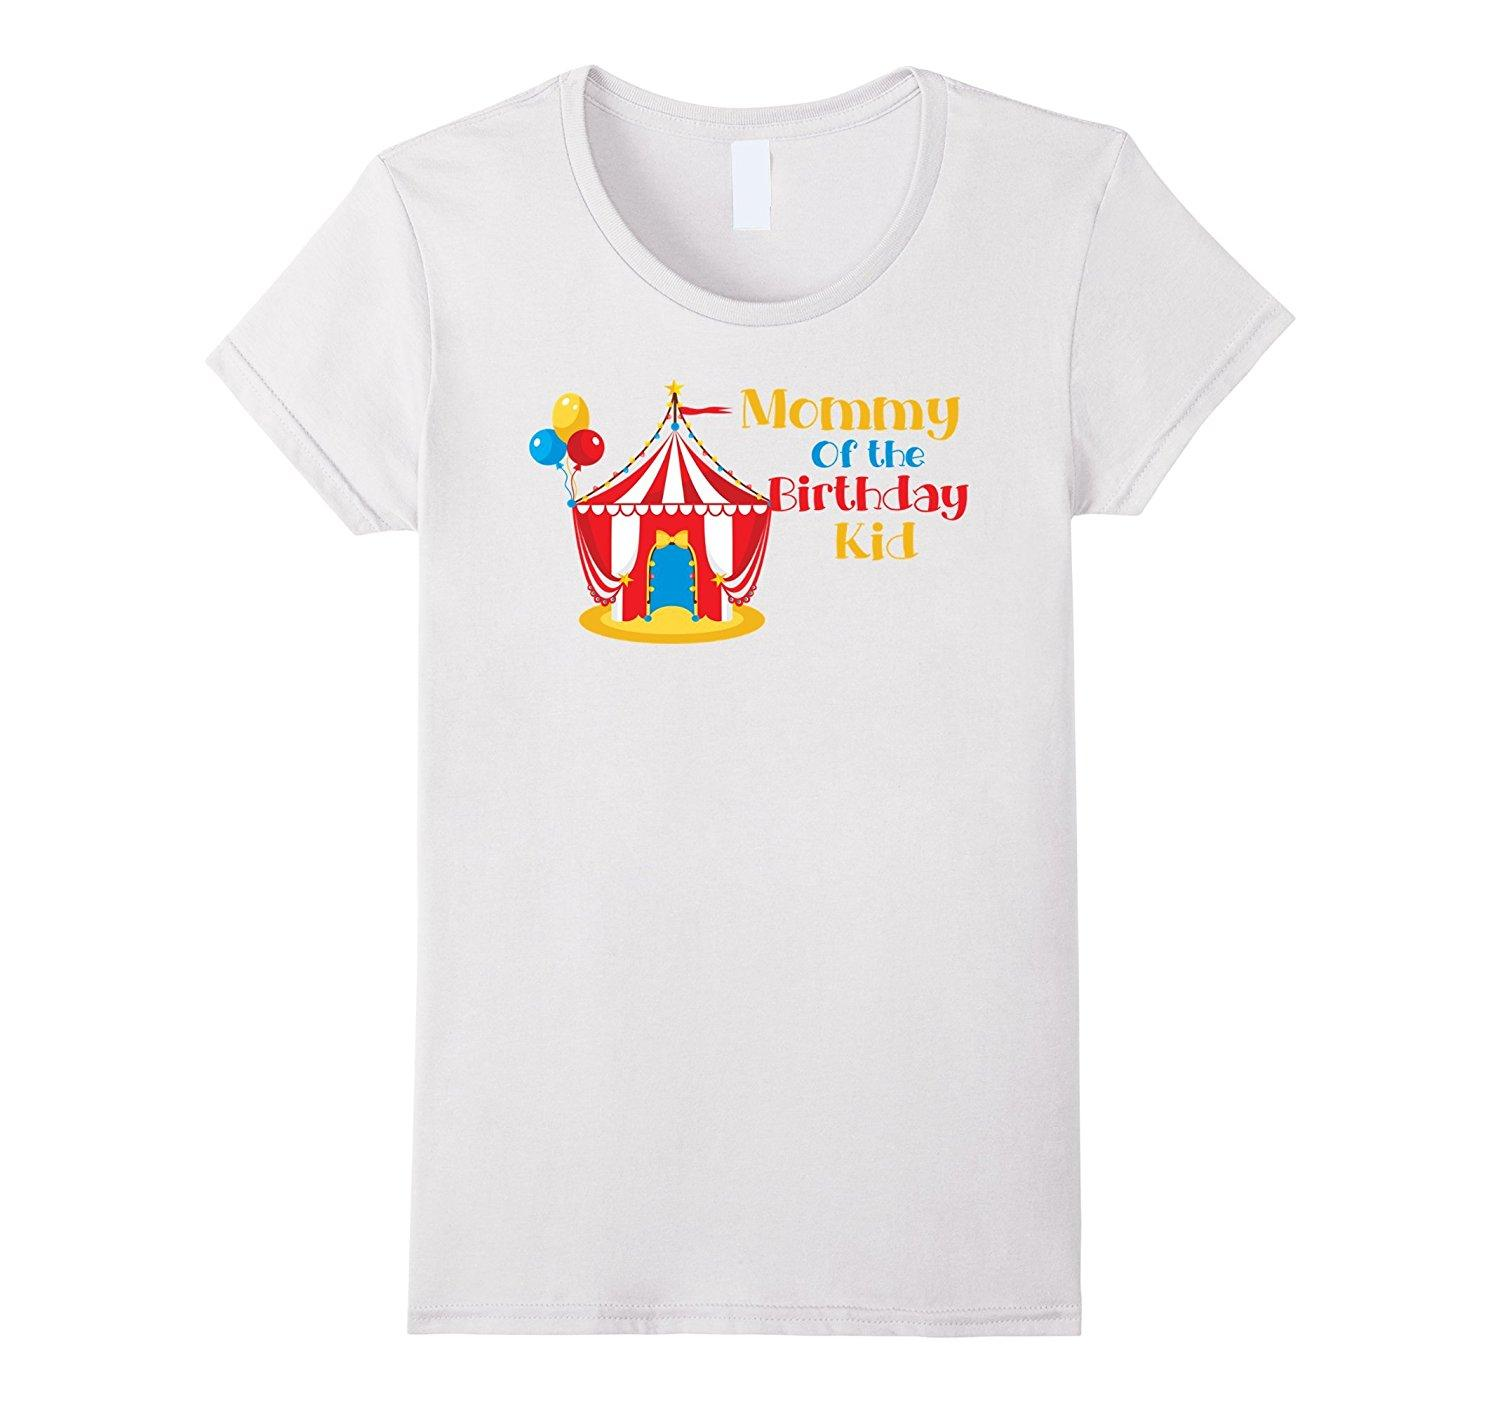 Mom Of The Birthday Kid Circus Shirt Carnival Tee Awesome Funny T Shirts Prints From Ineffableworld 1101